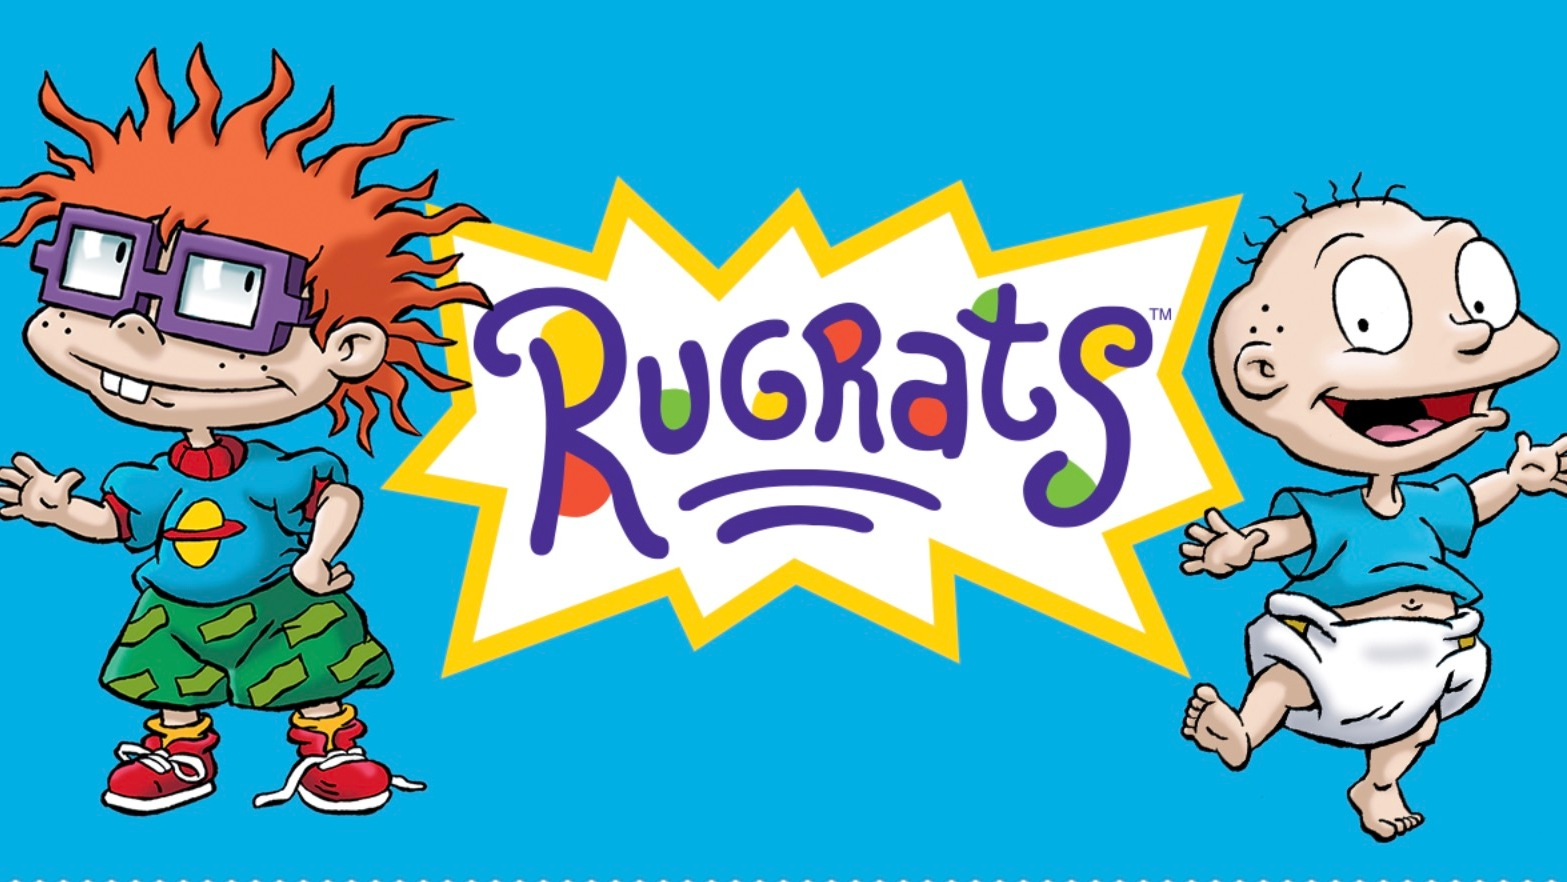 Movie rugrats. Coming back with a